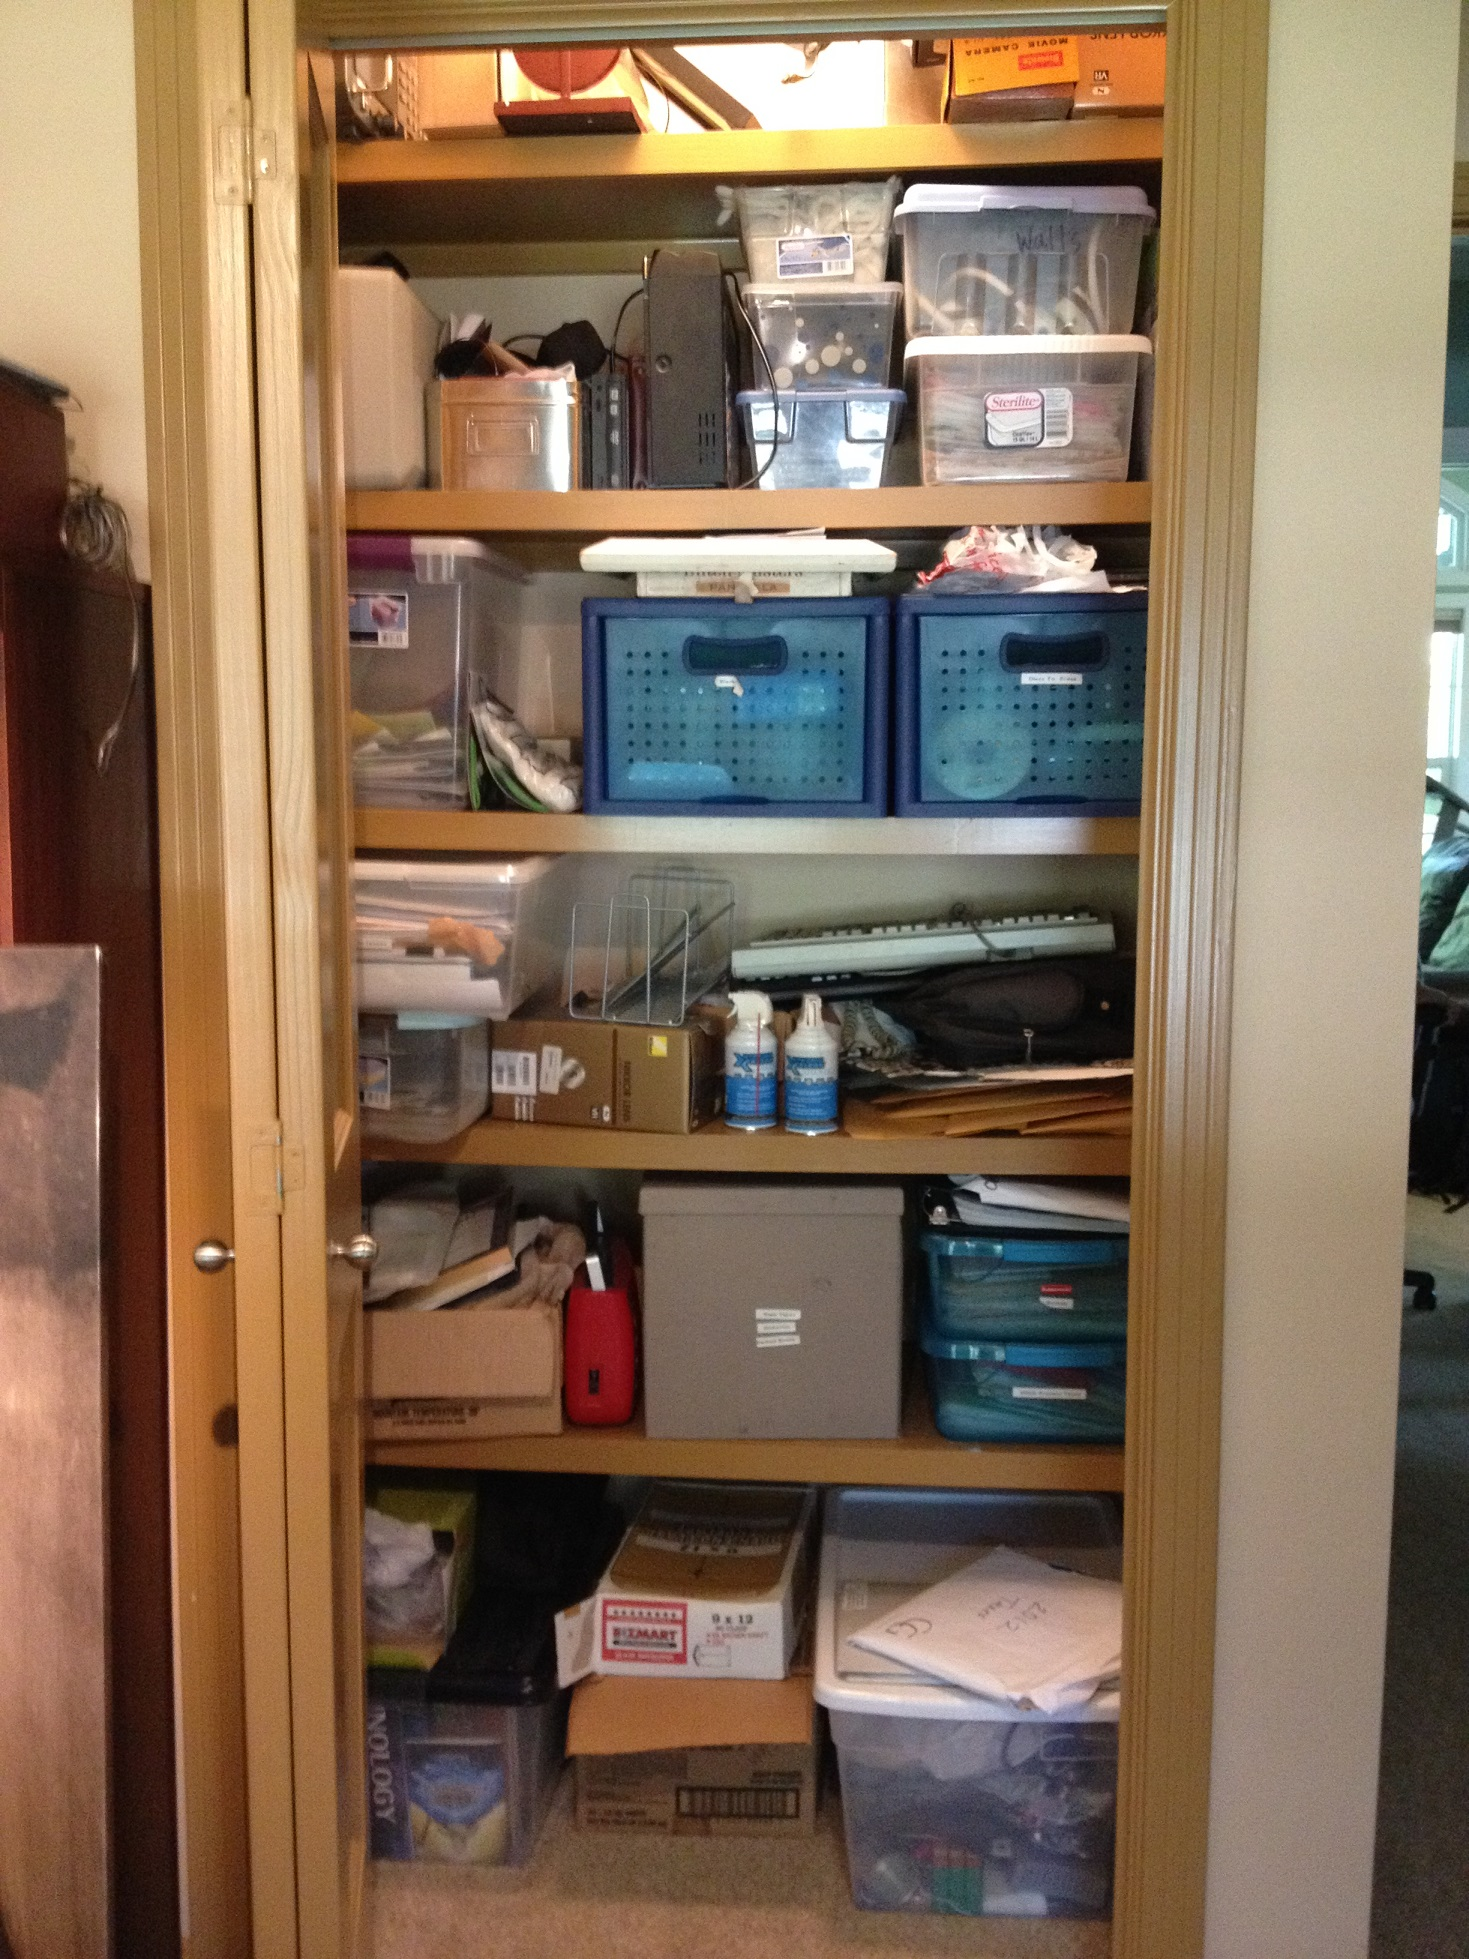 office closets. Closet Home Office. Purging Outdated Technology In A Office - Messy Closets L